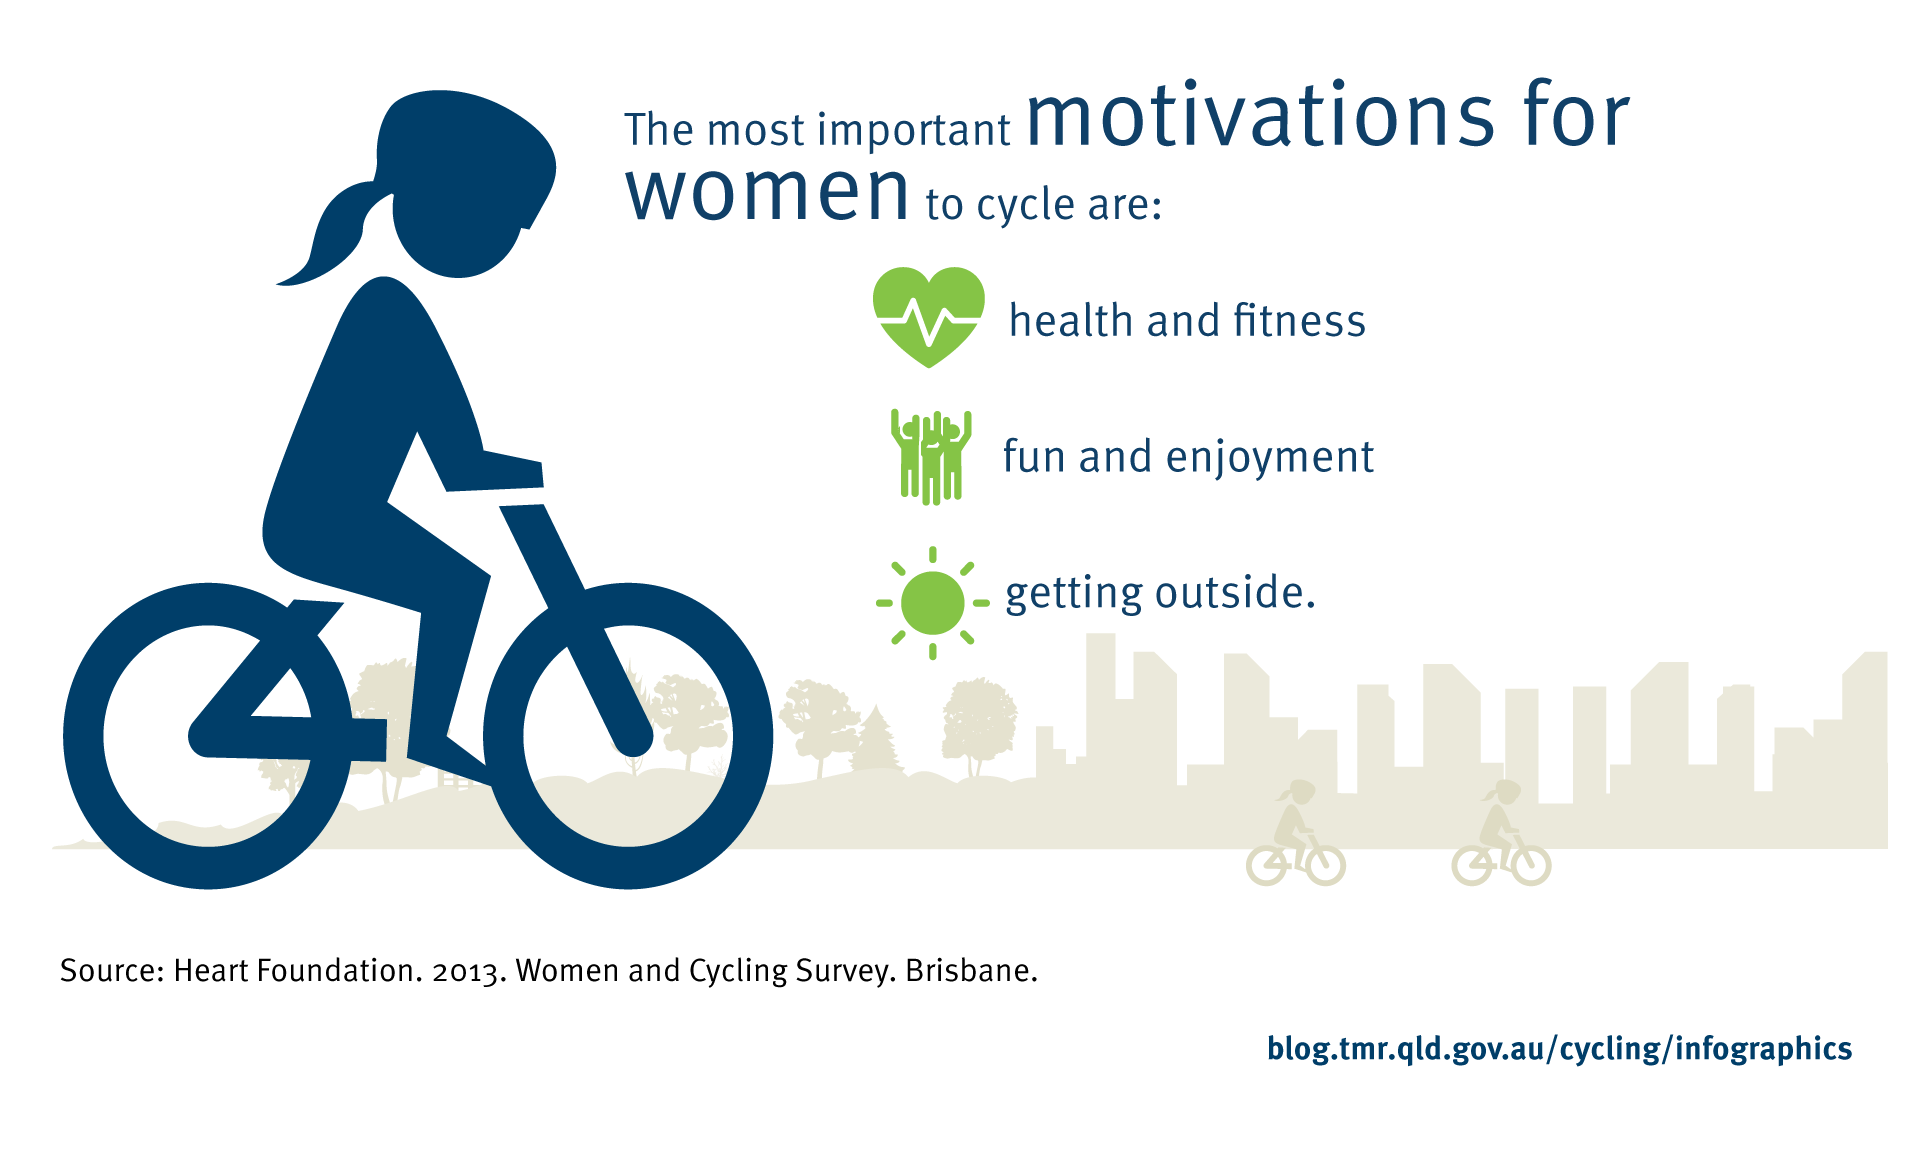 The most important motivations for women to cycle are: health and fitness, fun and enjoyment and getting outside. Source: Heart Foundation. 2013. Women and Cycling Survey. Brisbane.